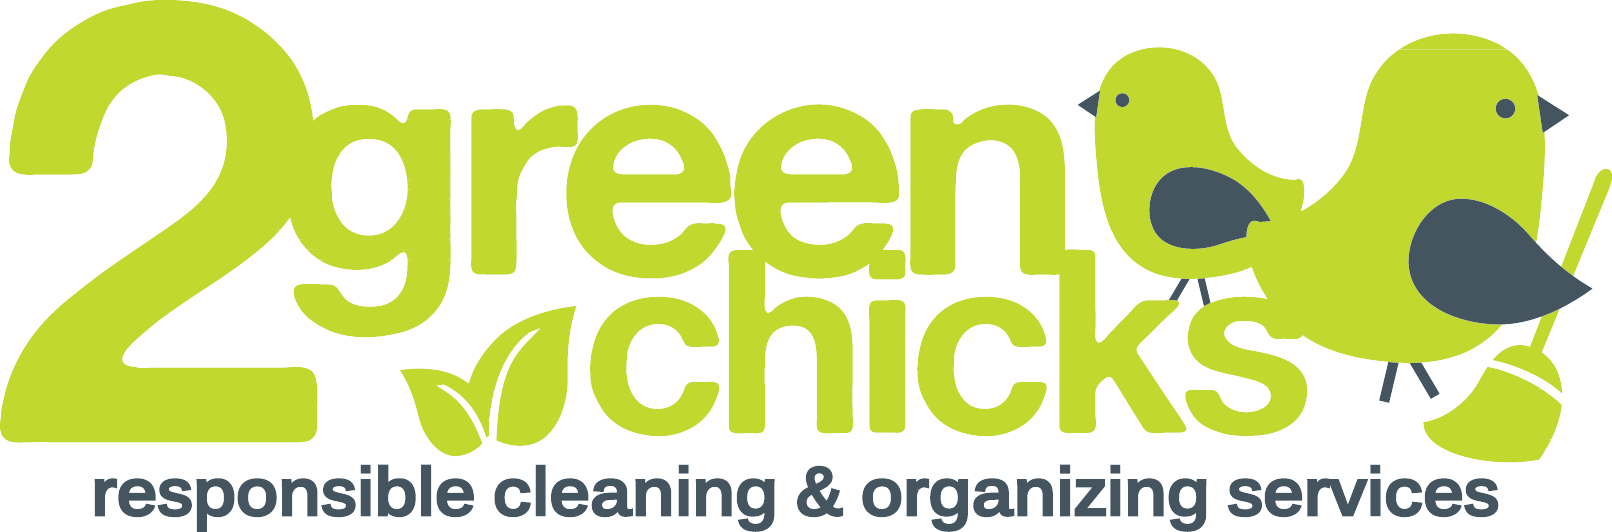 2 Green Chicks Logo